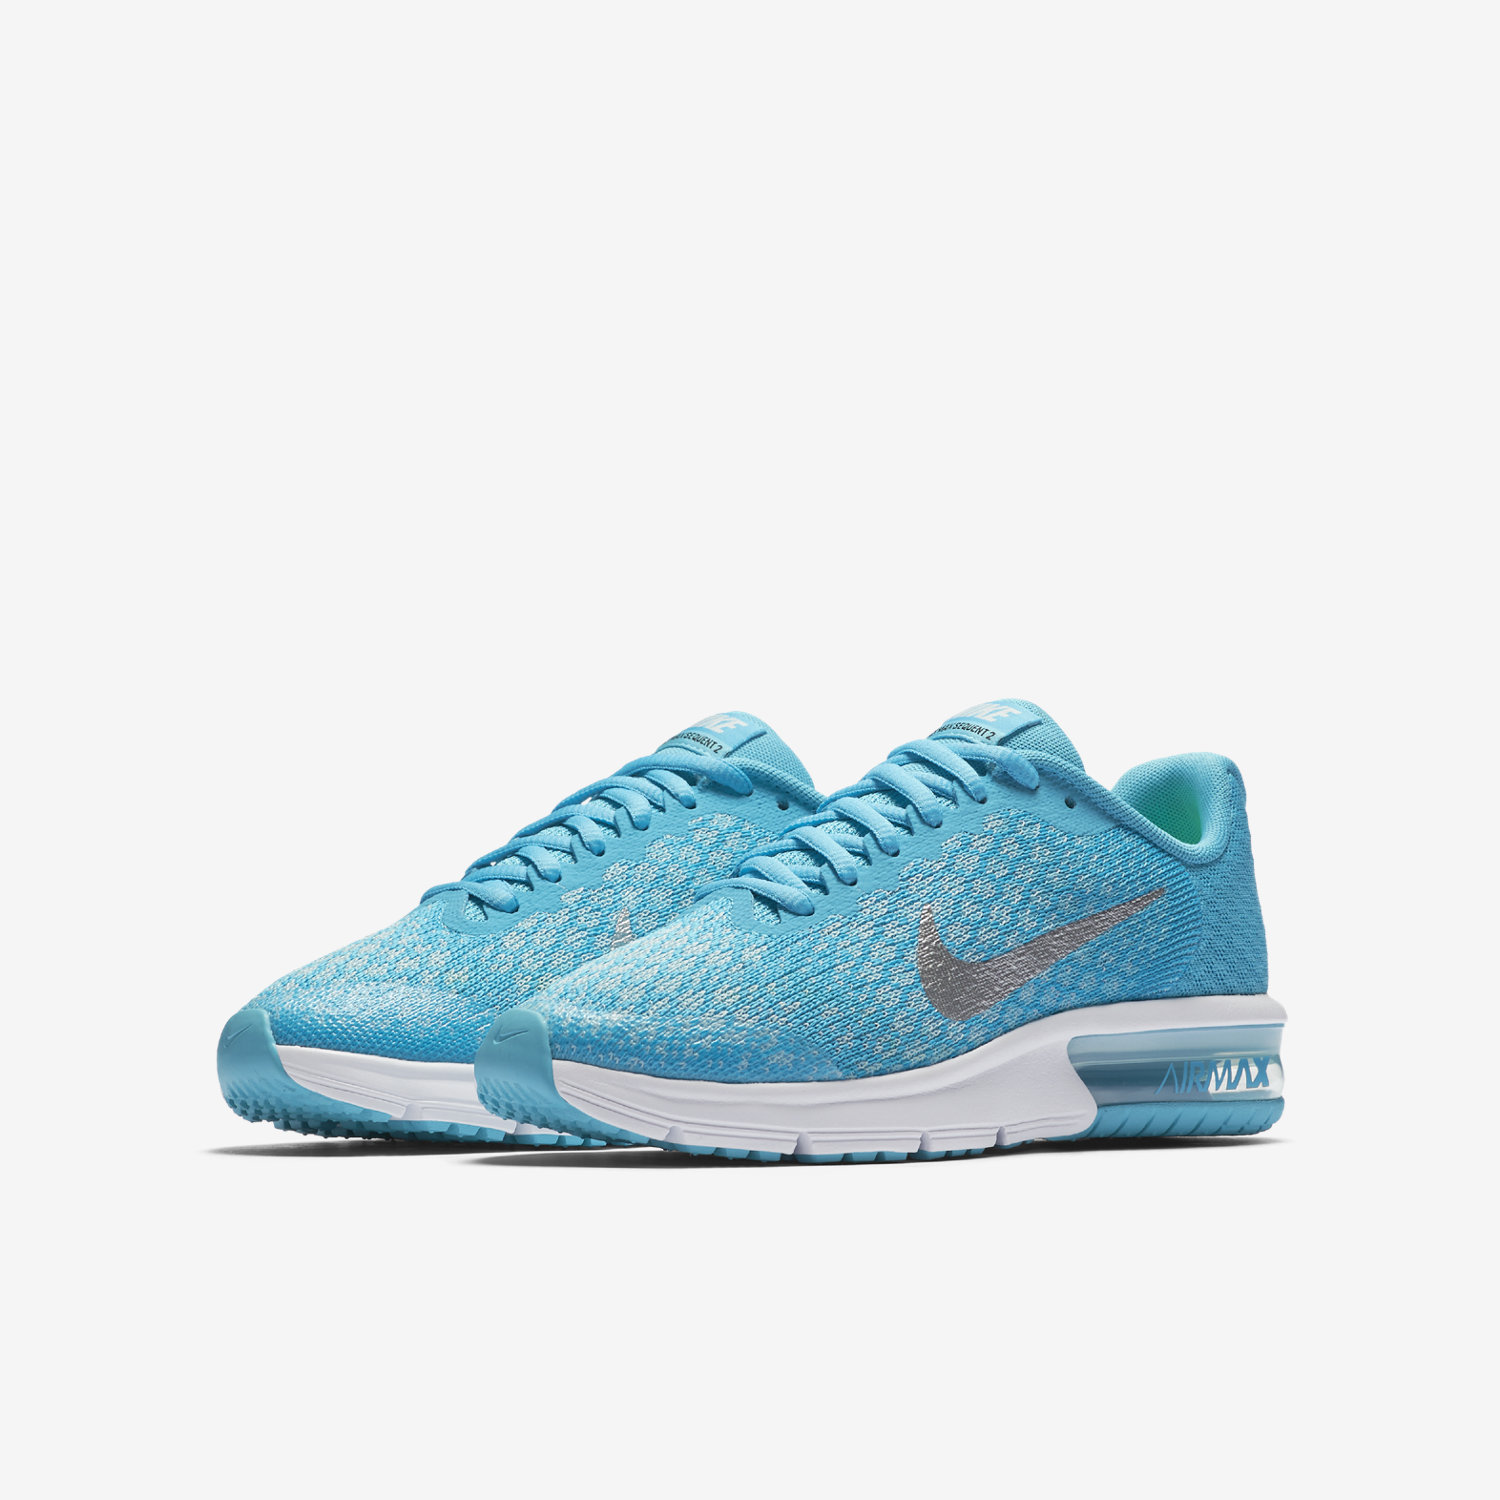 nike air max sequent 2 blue vcfa. Black Bedroom Furniture Sets. Home Design Ideas